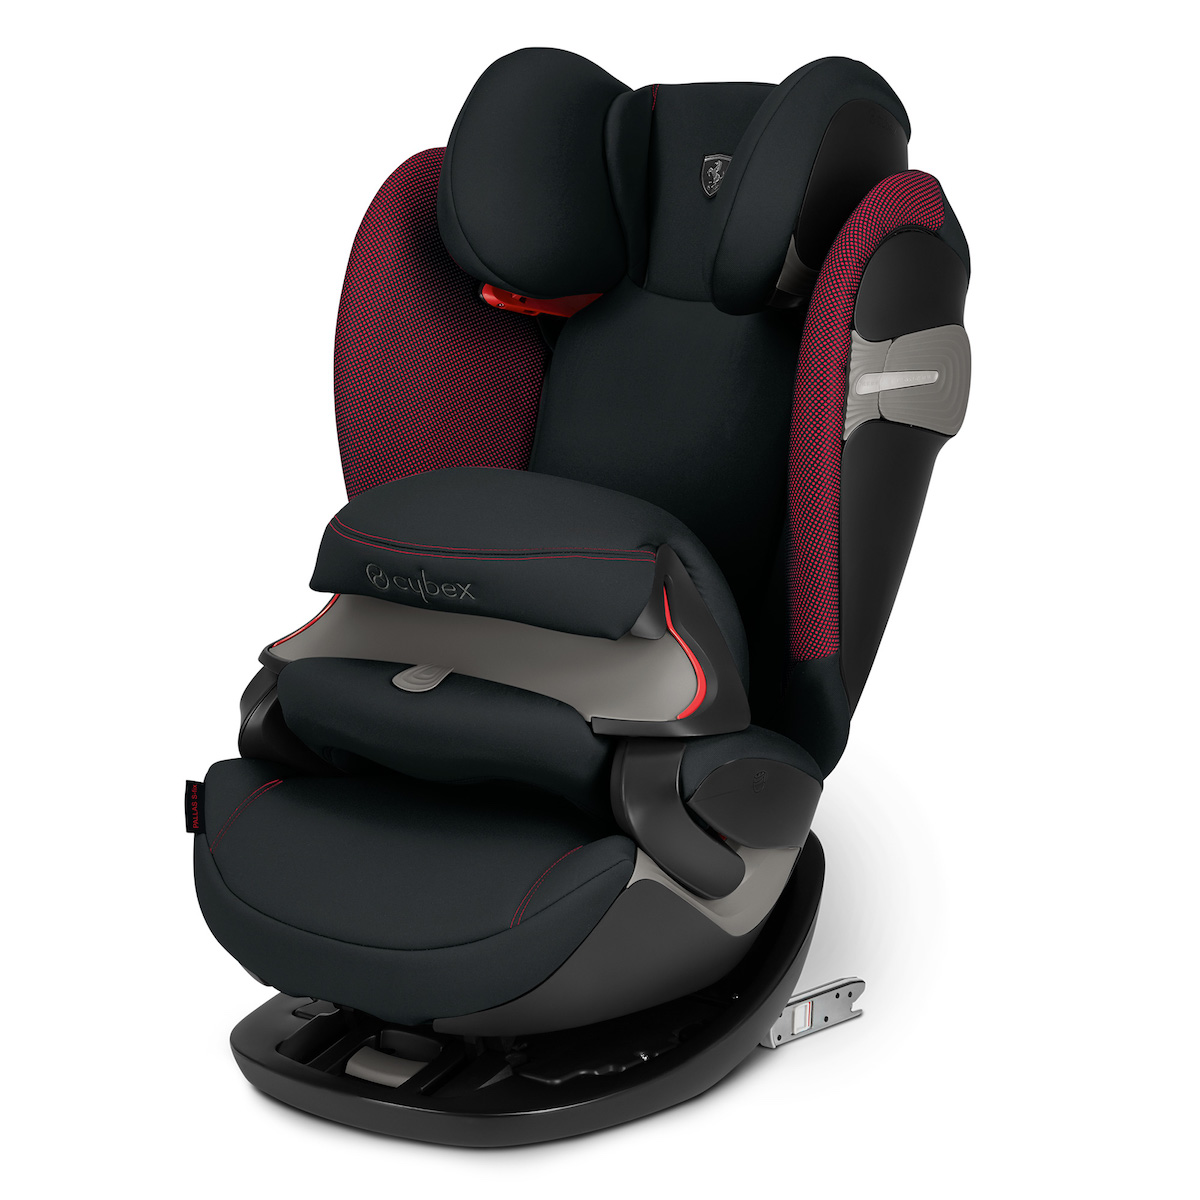 cybex pallas s fix scuderia ferrari kollektion 2019 101005. Black Bedroom Furniture Sets. Home Design Ideas